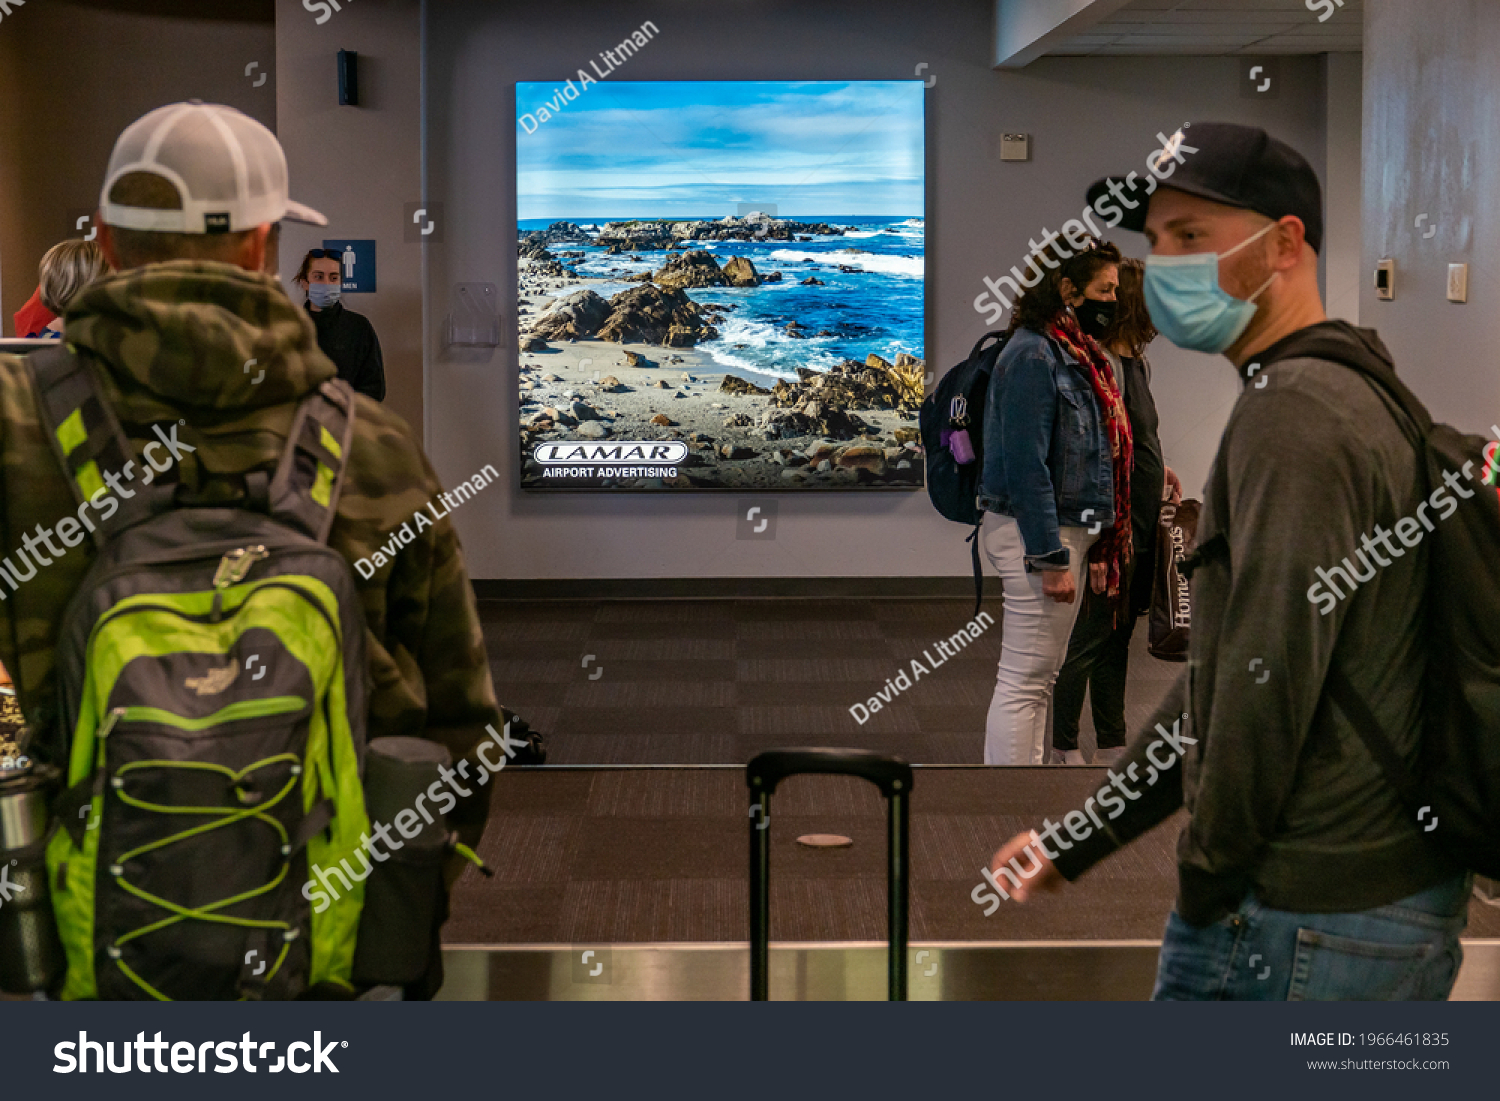 Monterey, California - May 1, 2021: A photograph of Asilomar Beach by Shutterstock photographer David A Litman is on display at the Monterey Airport baggage claim area.